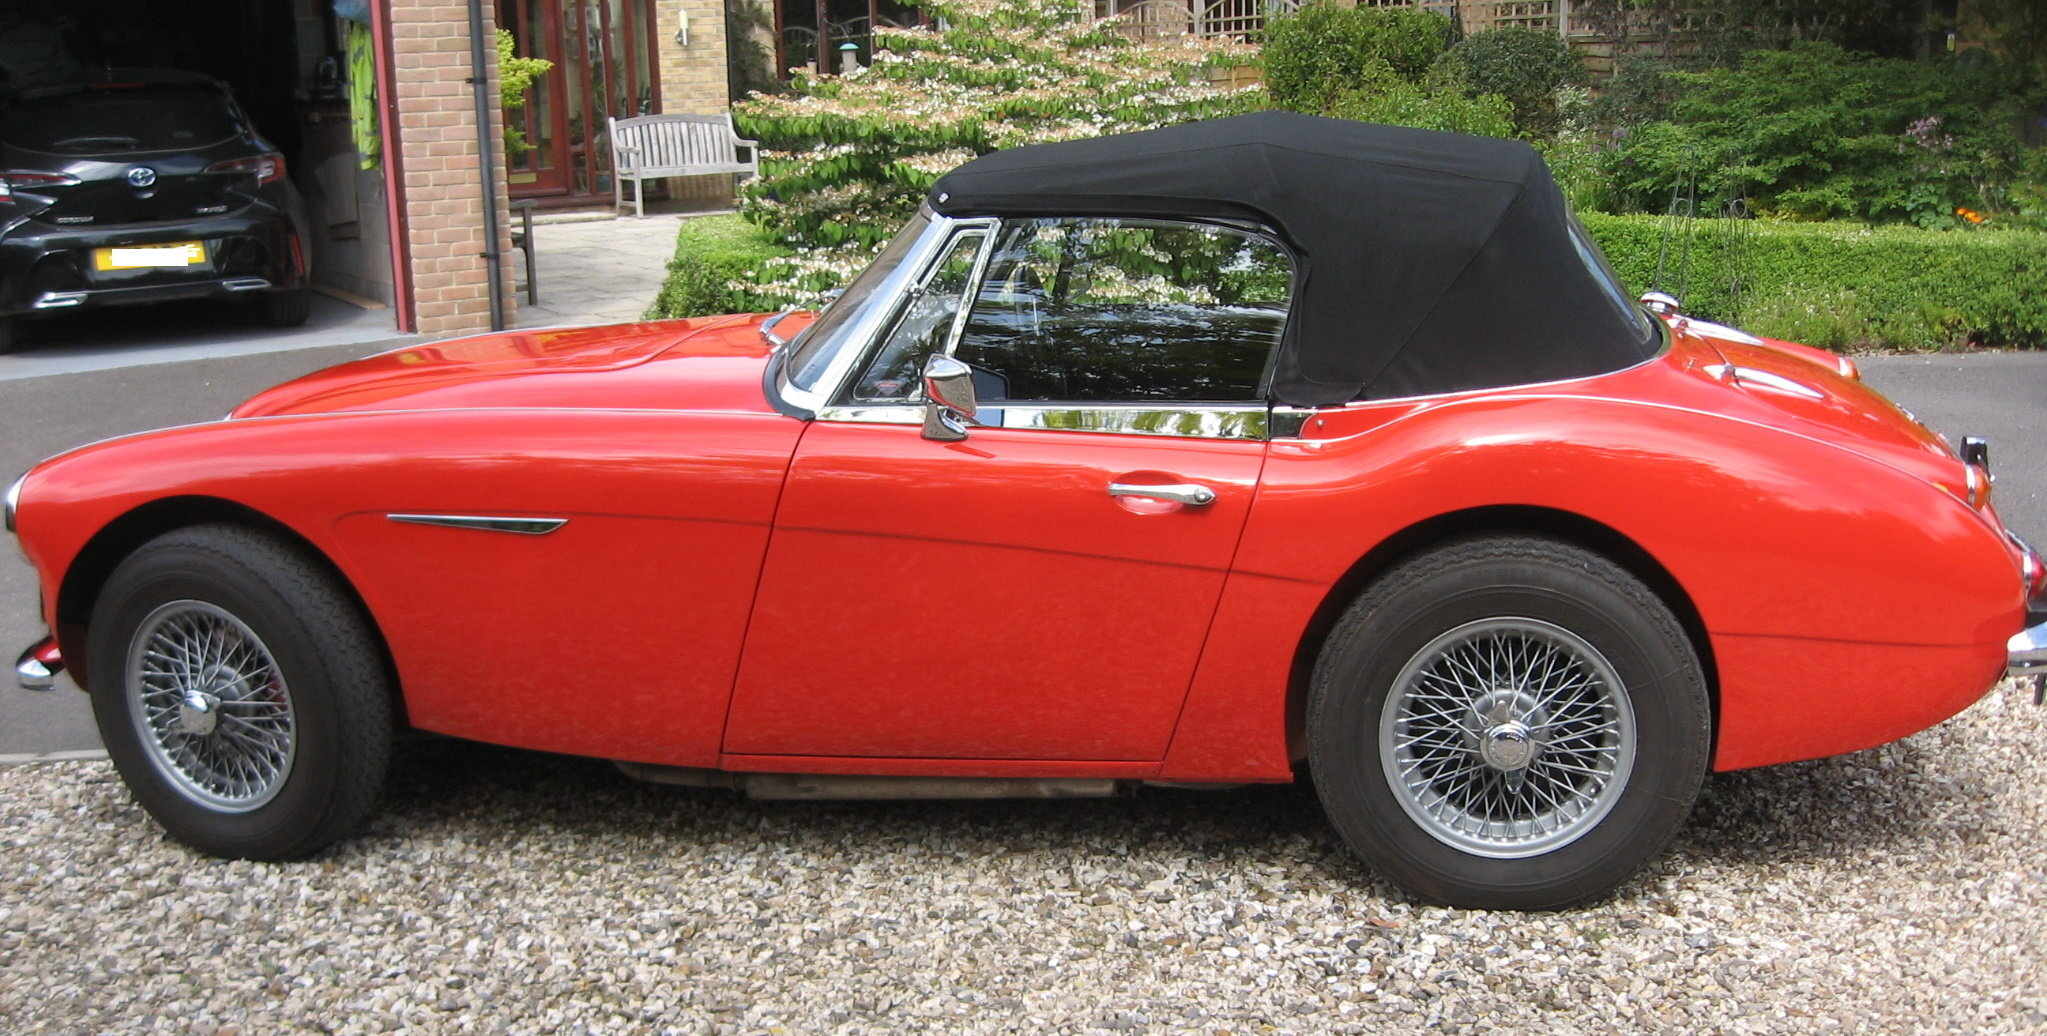 1966 Austin Healey Mk3 BJ8 fast road eng For Sale (picture 4 of 6)